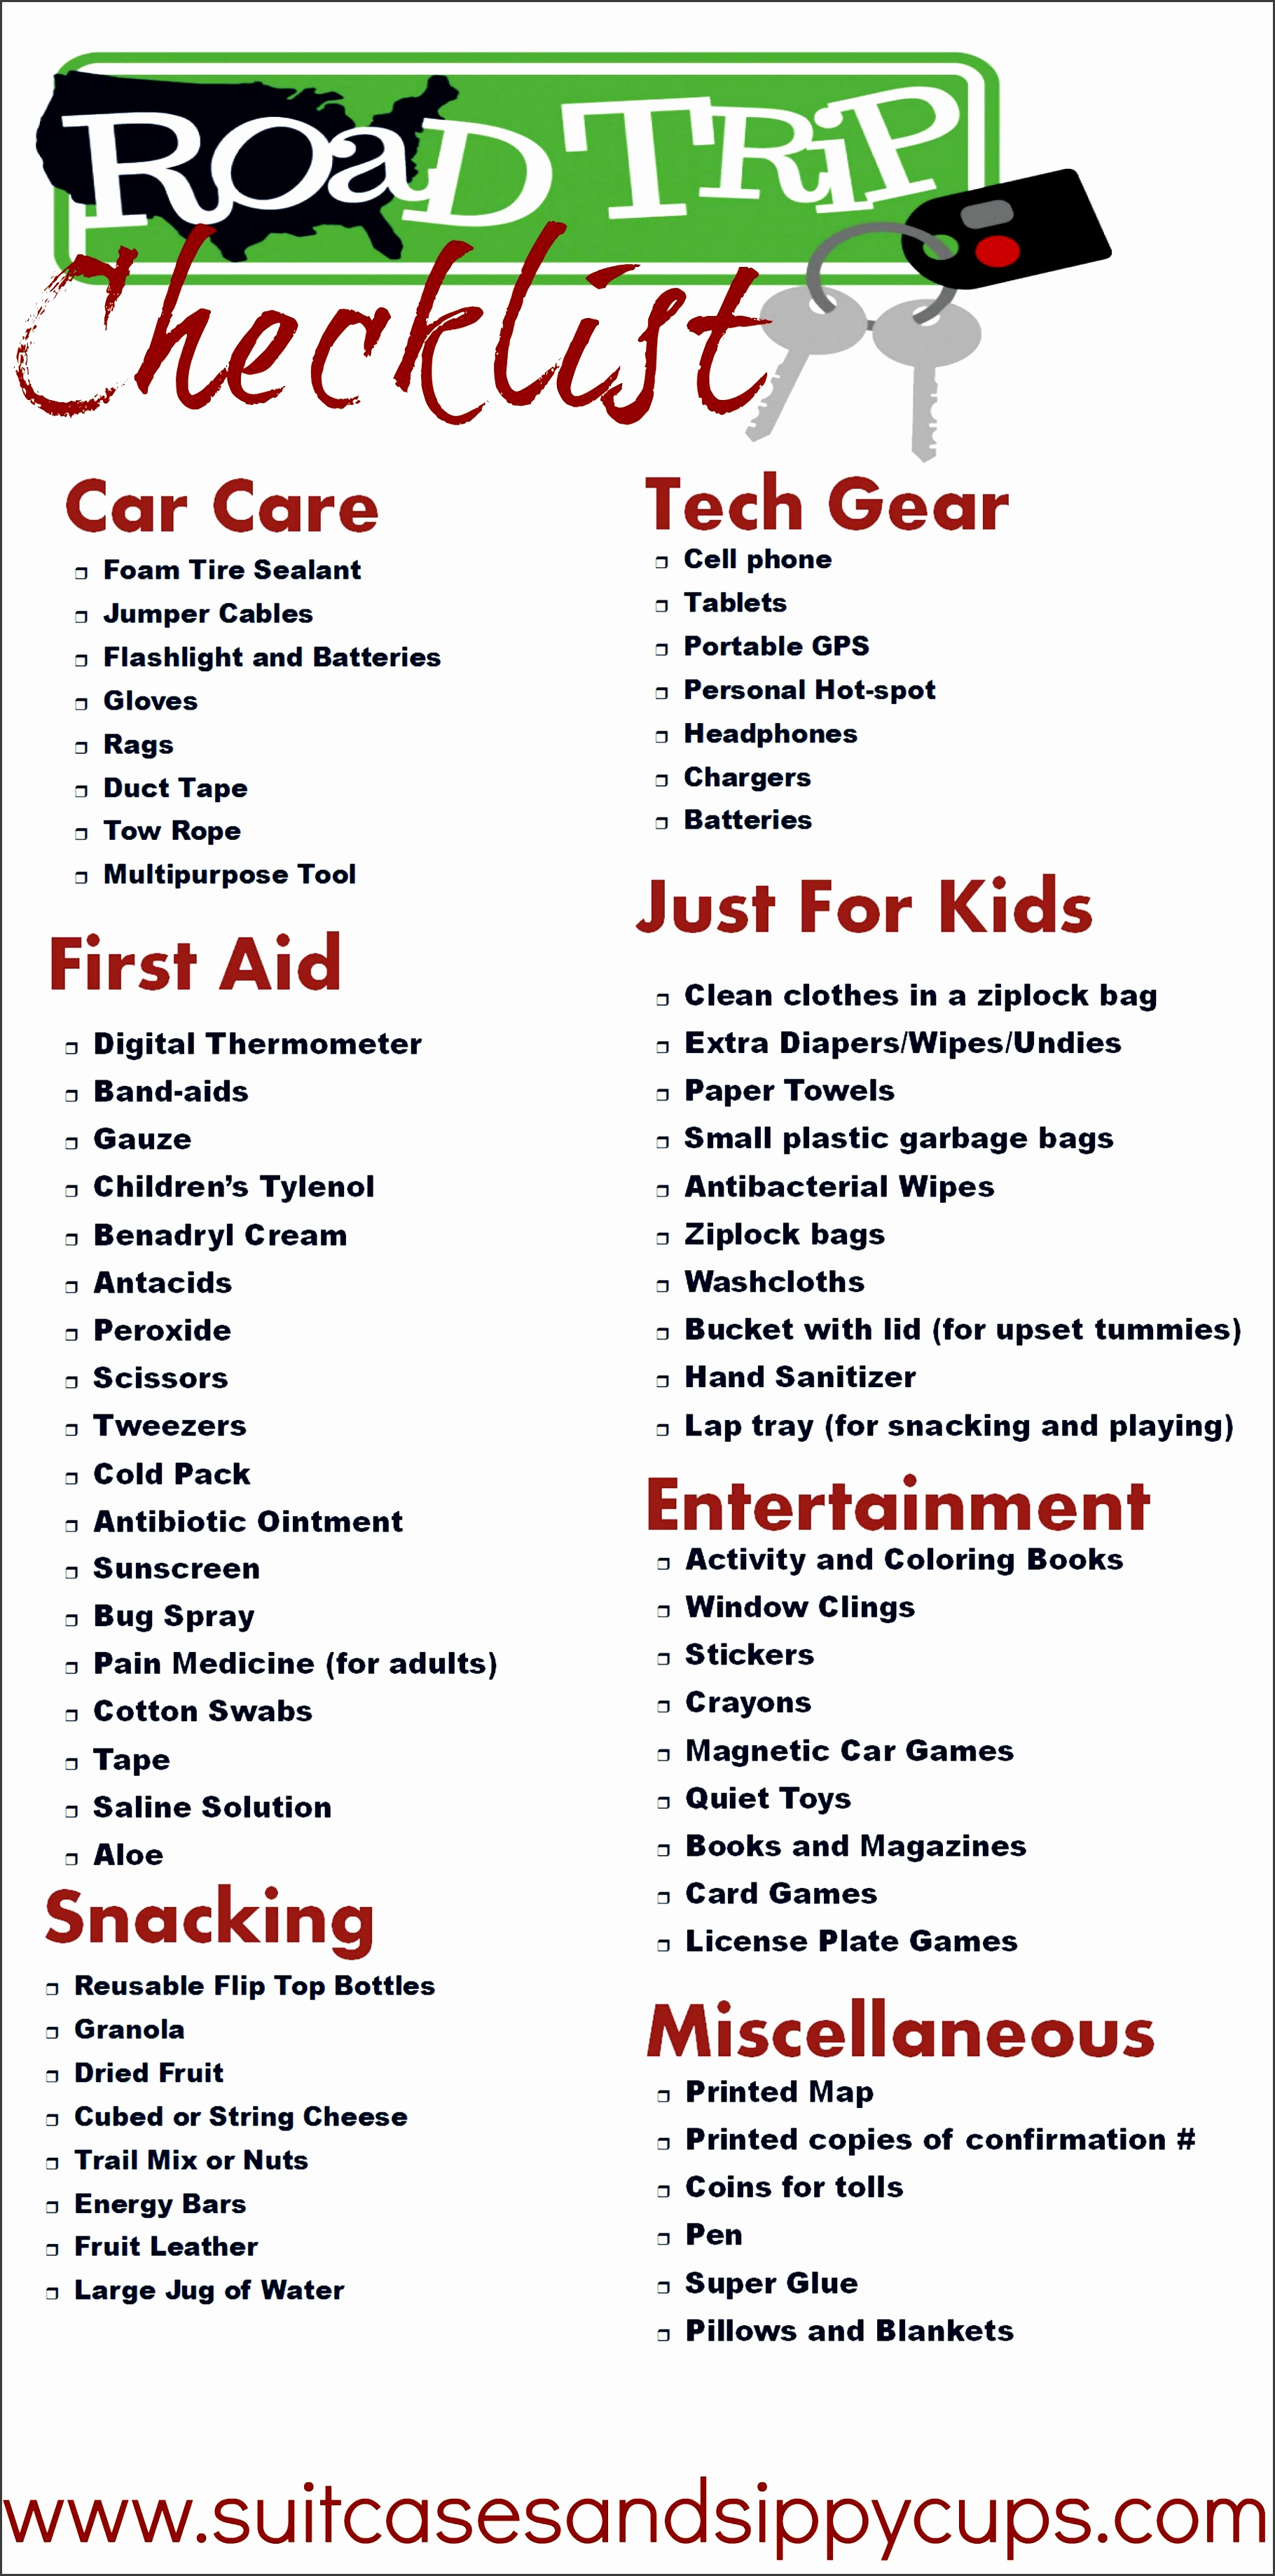 road trip packing with kids checklist